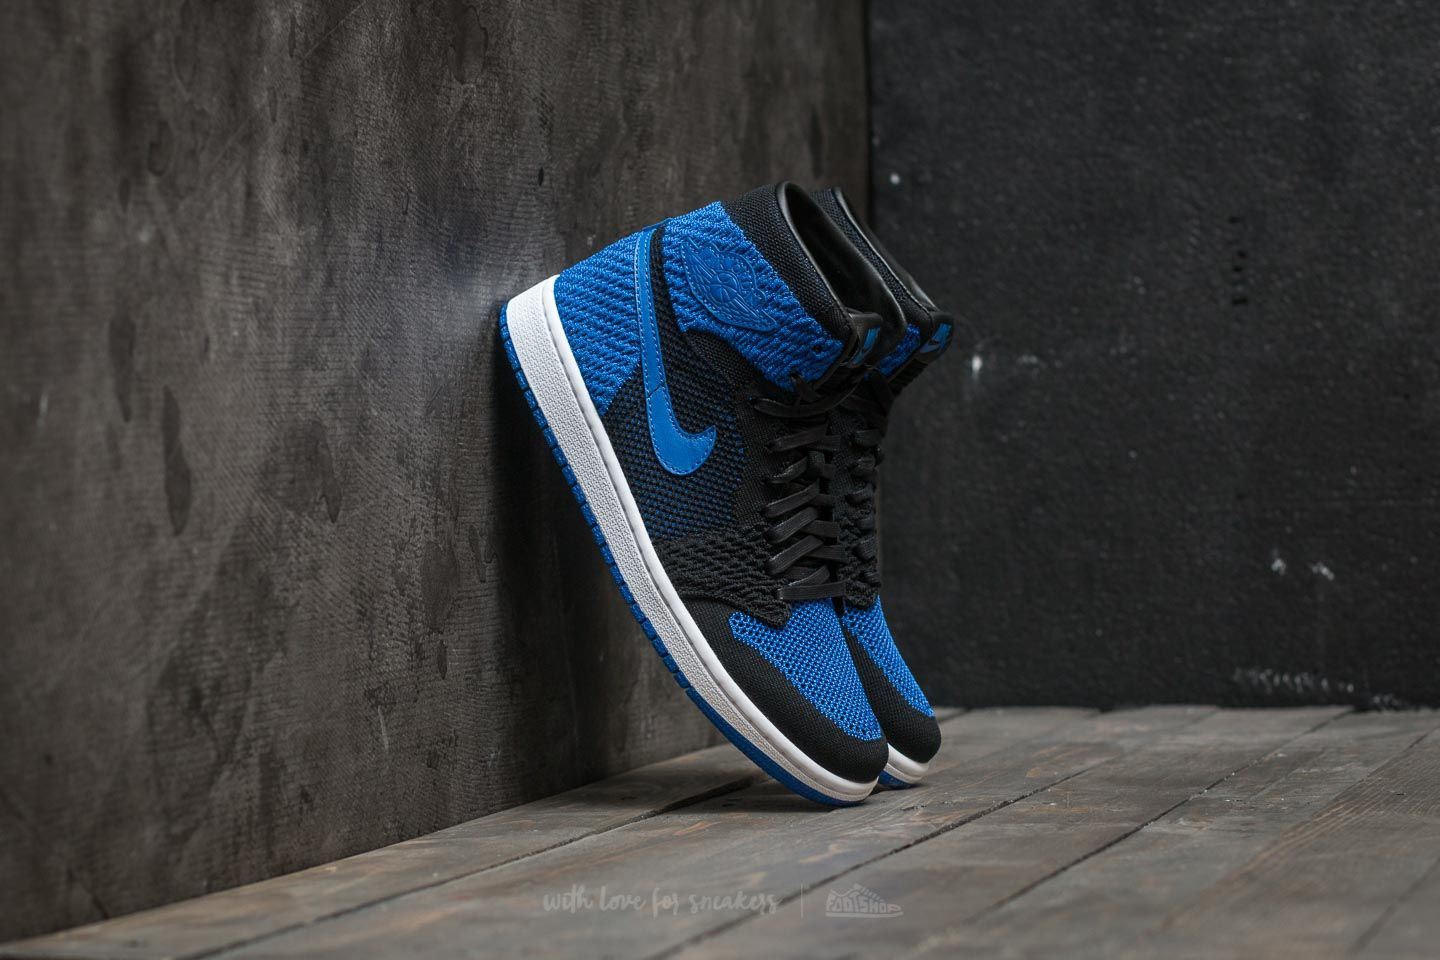 68ef3e54aebd69 Air Jordan 1 Retro Hi Flyknit BG Black  Game Royal-White